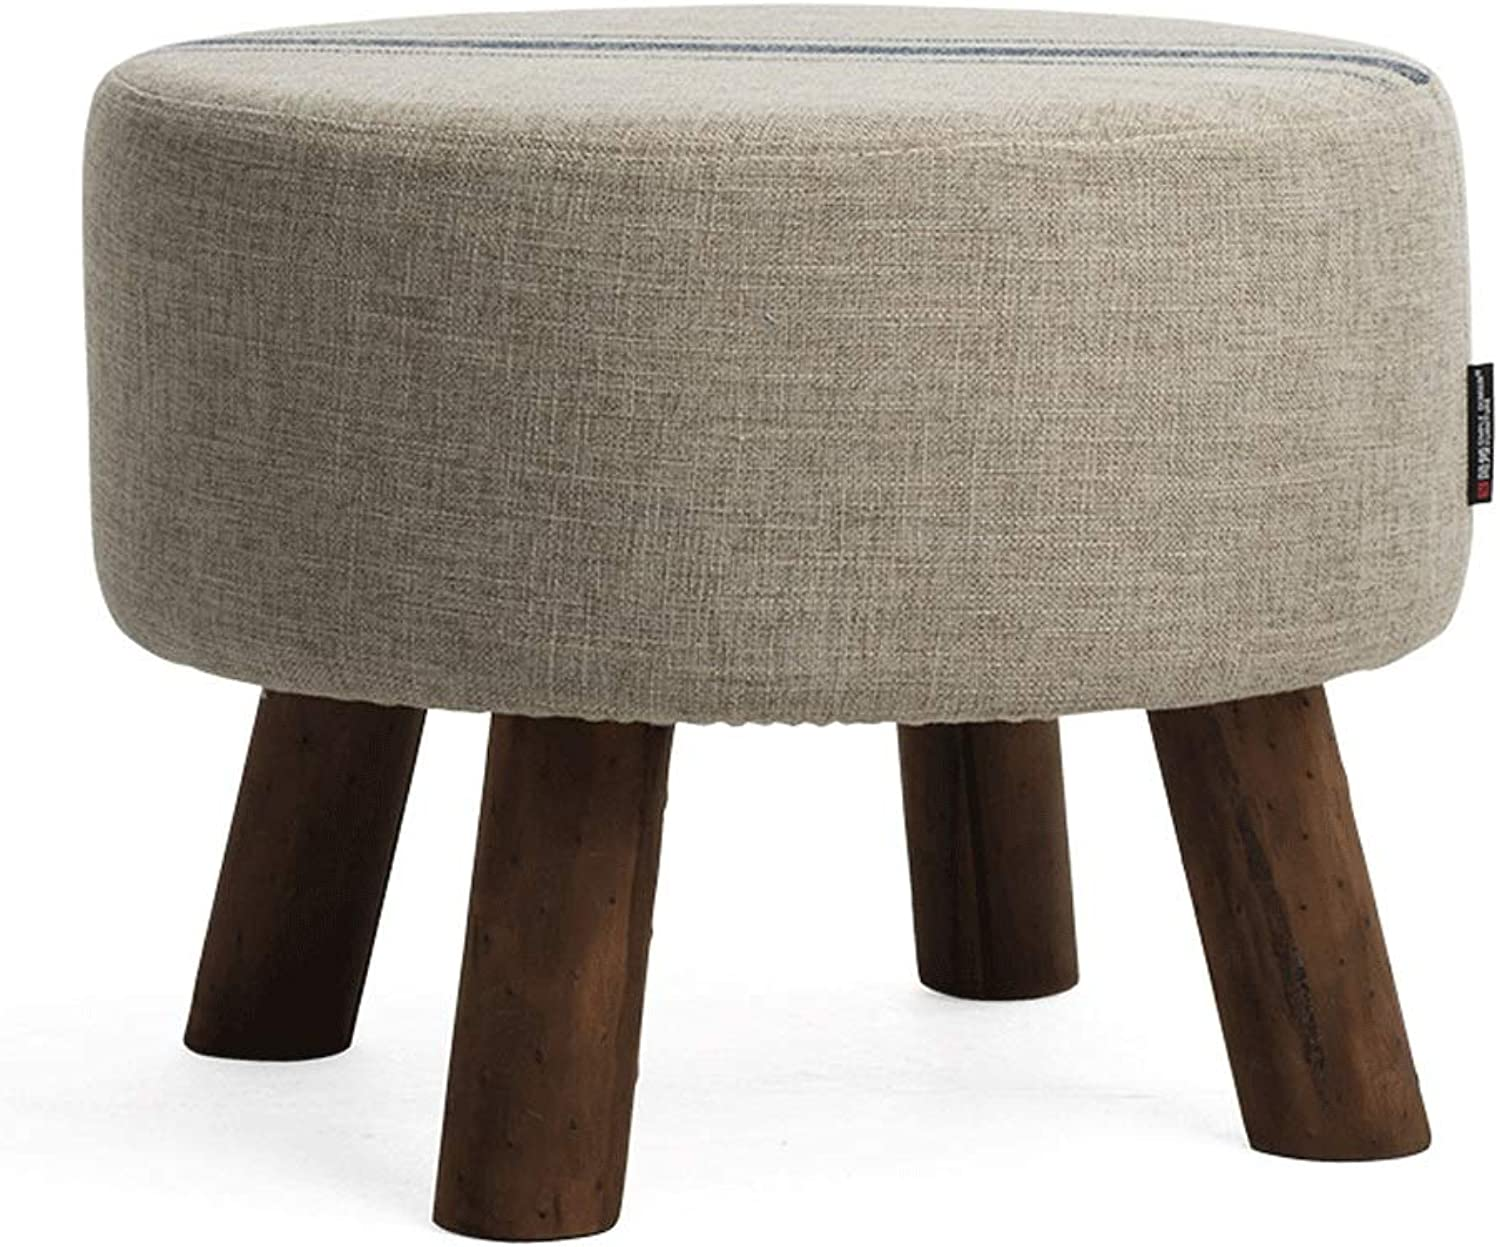 Living Room Footstool Simple Modern shoes Bench Linen Red and bluee Stripes